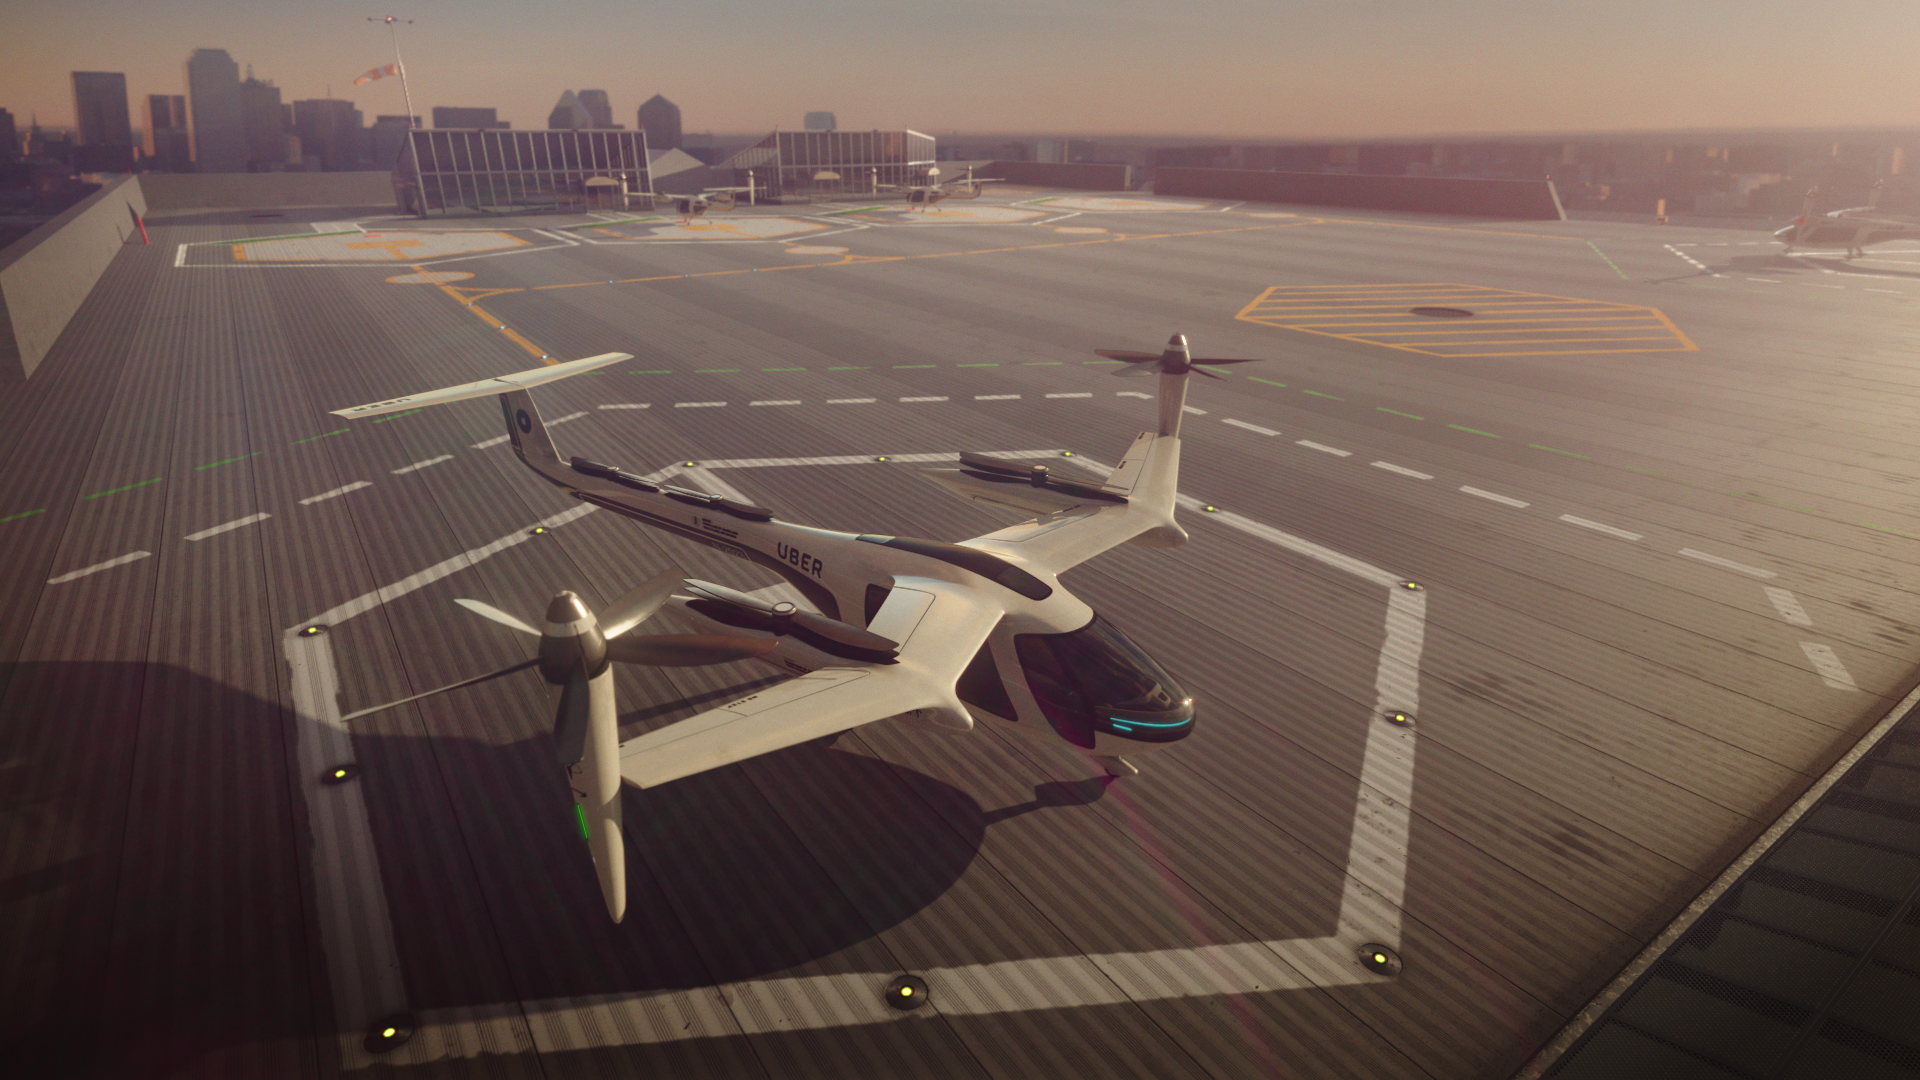 Uber adds LA to flying taxi test cities, demo flights slated for 2020